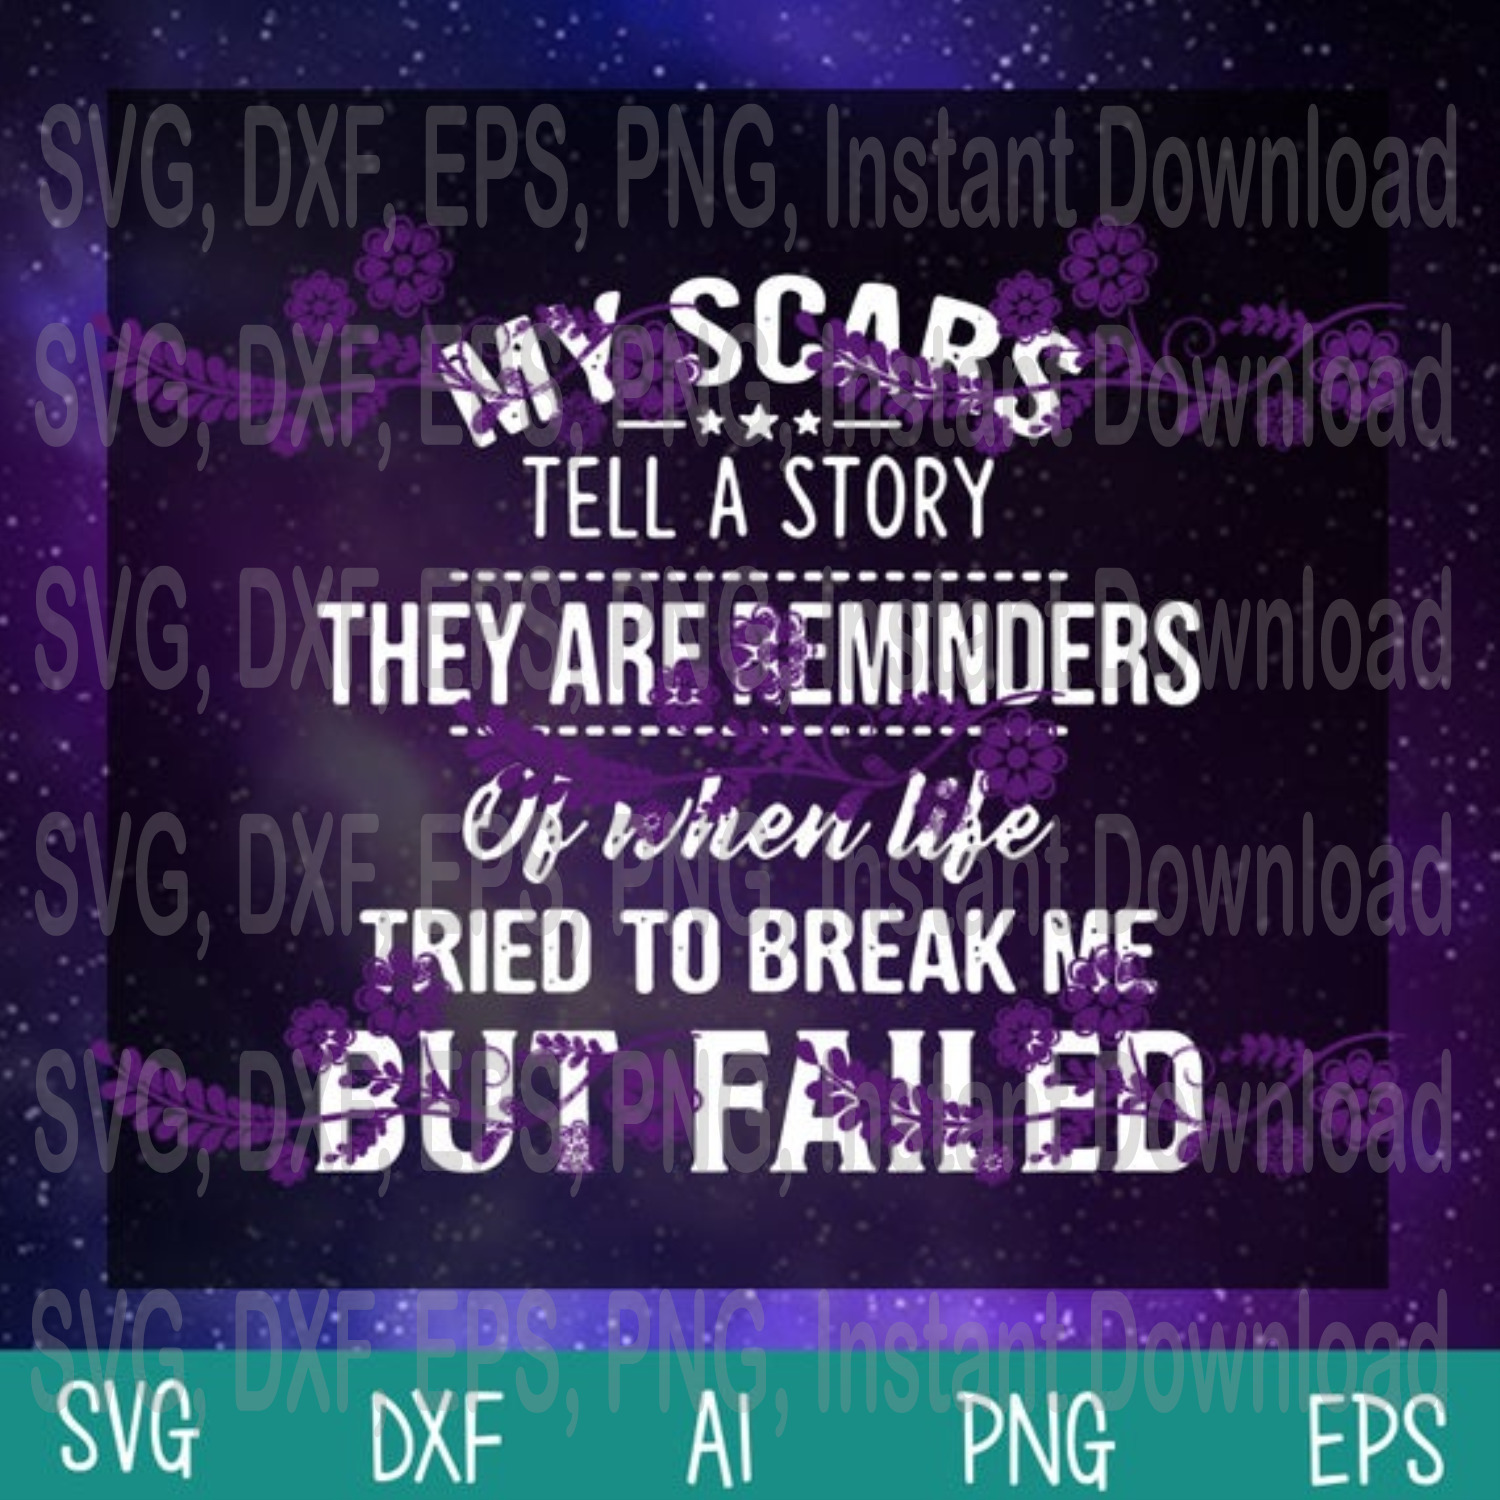 My scars tell a story. They are a reminder of times when life tried to break me,